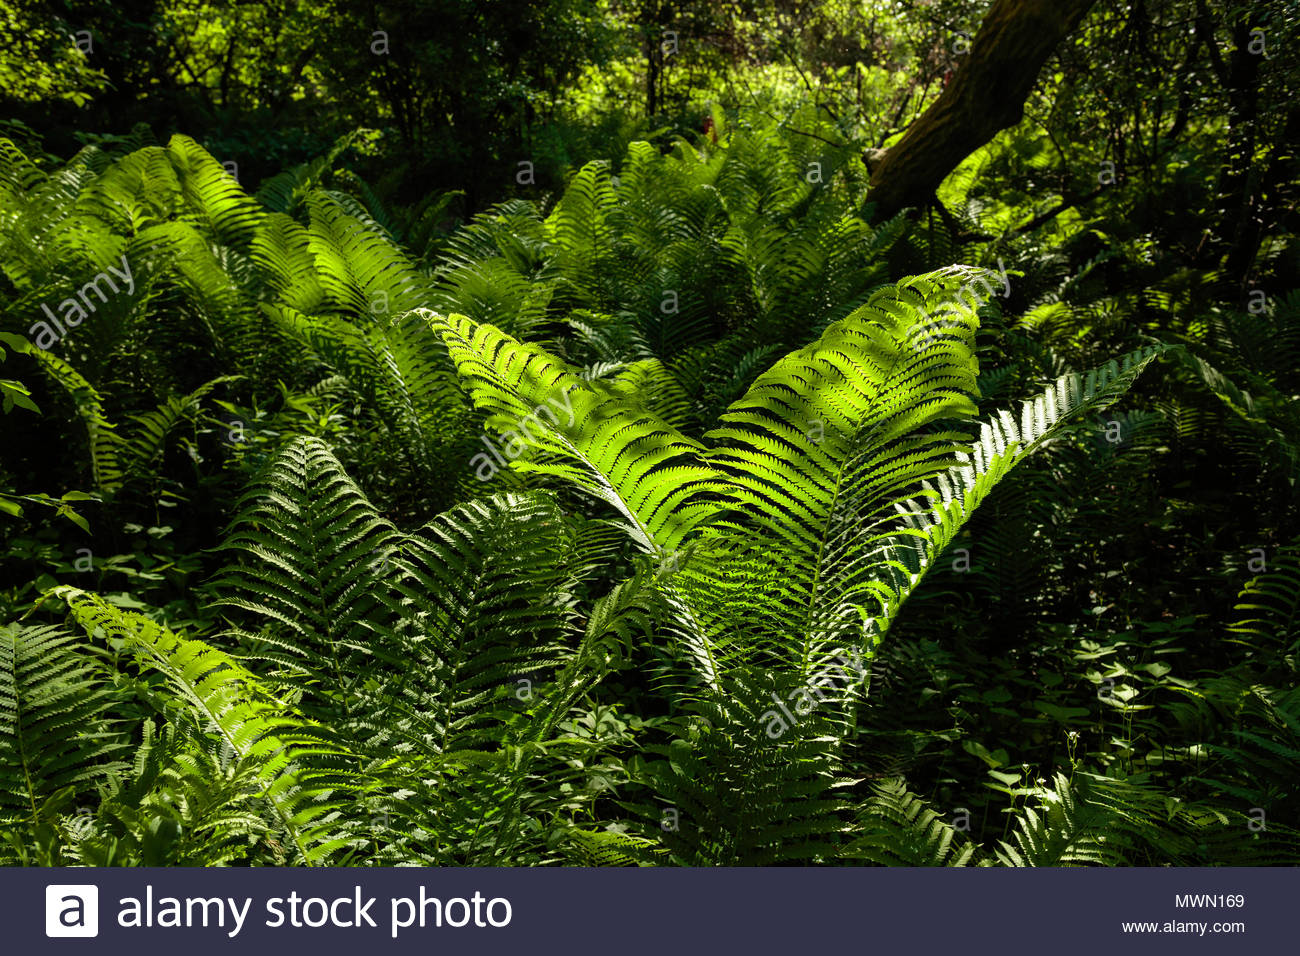 sunlit-fern-in-the-carolinian-forest-in-